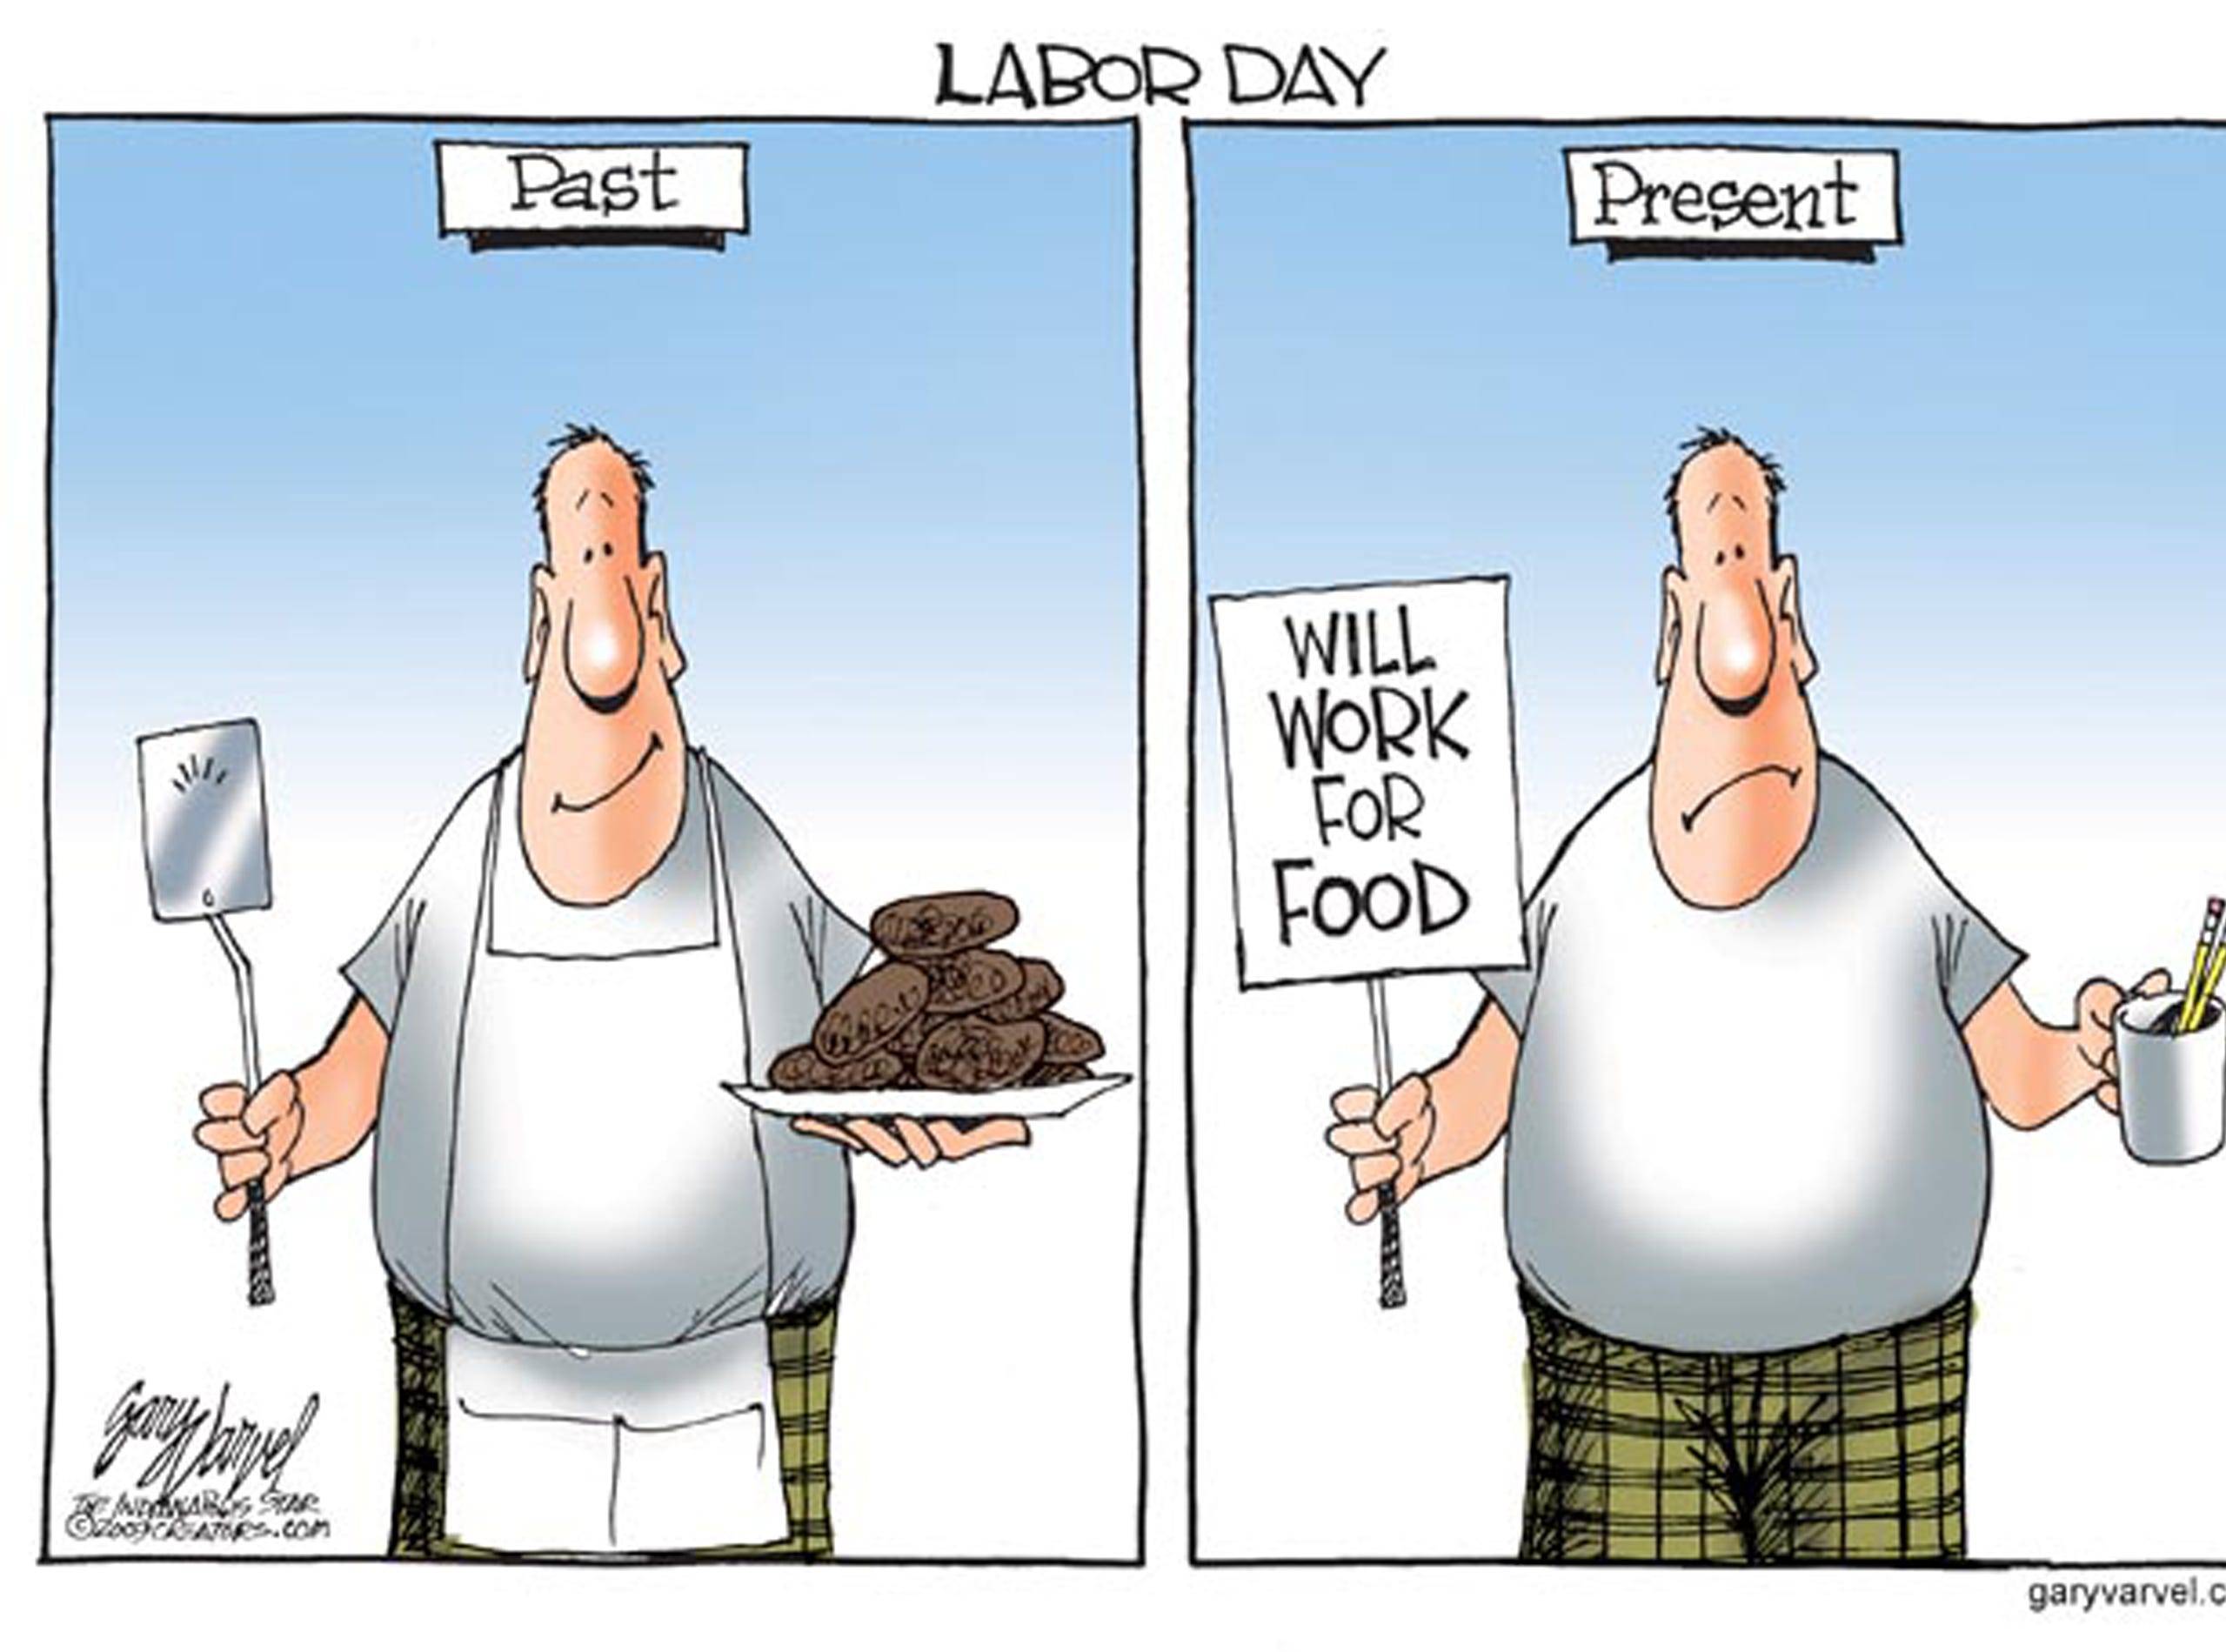 First published for Labor Day 2009. The cartoonist's homepage, indystar.com/opinion/varvel